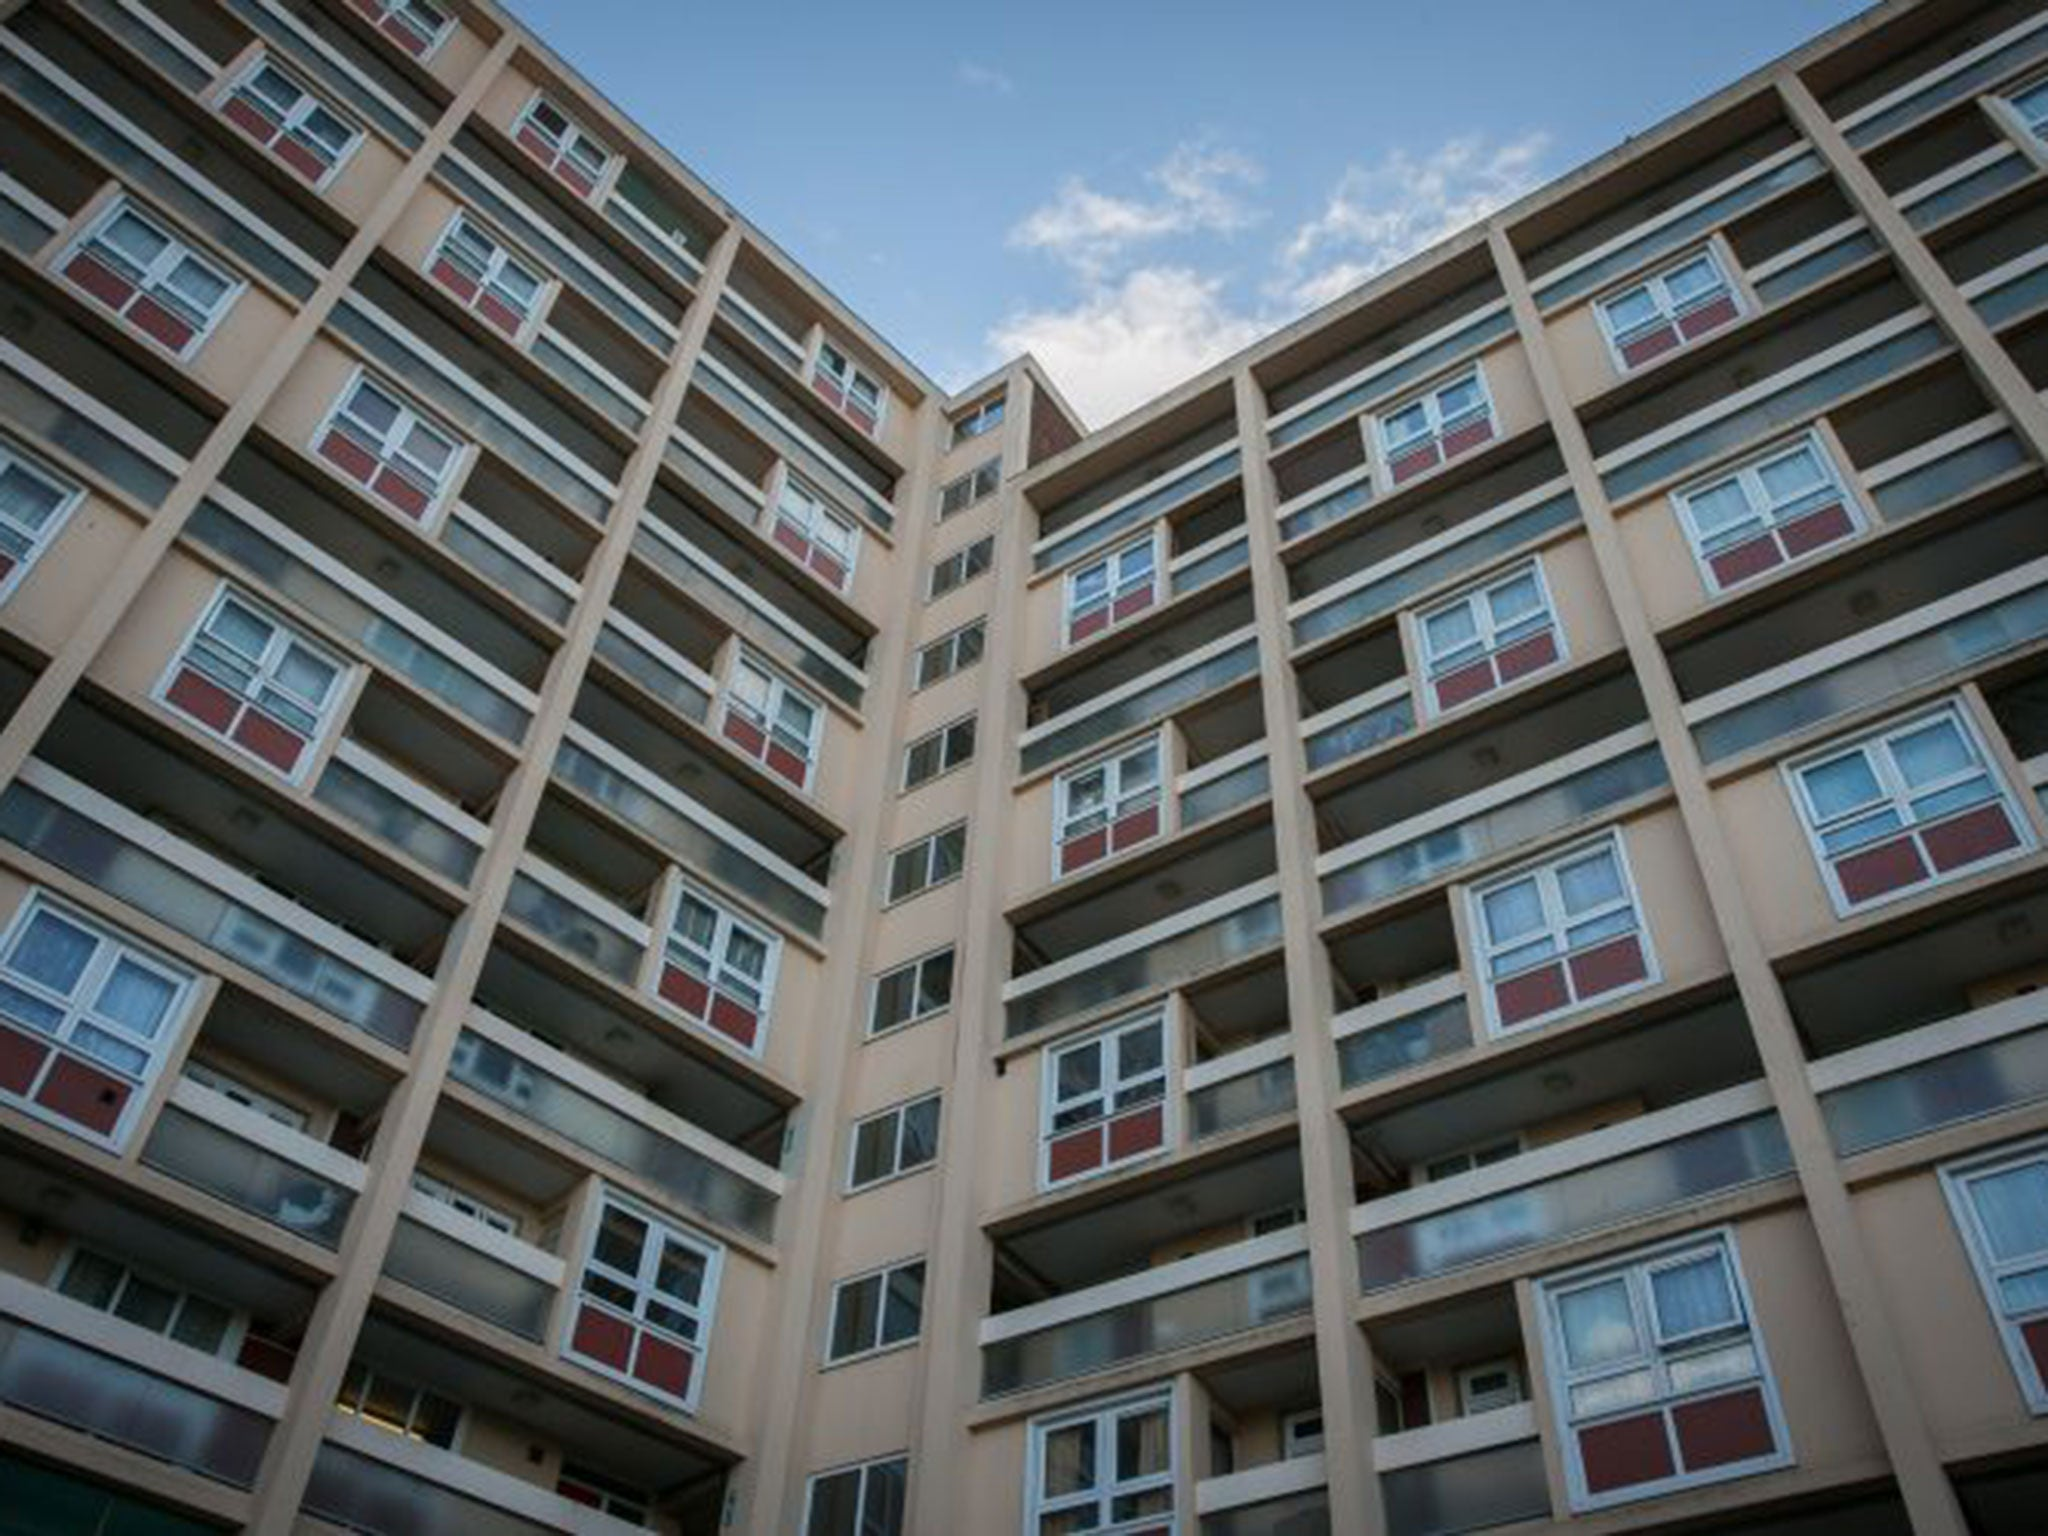 Social housing faces slow with 88 000 homes forecast to be